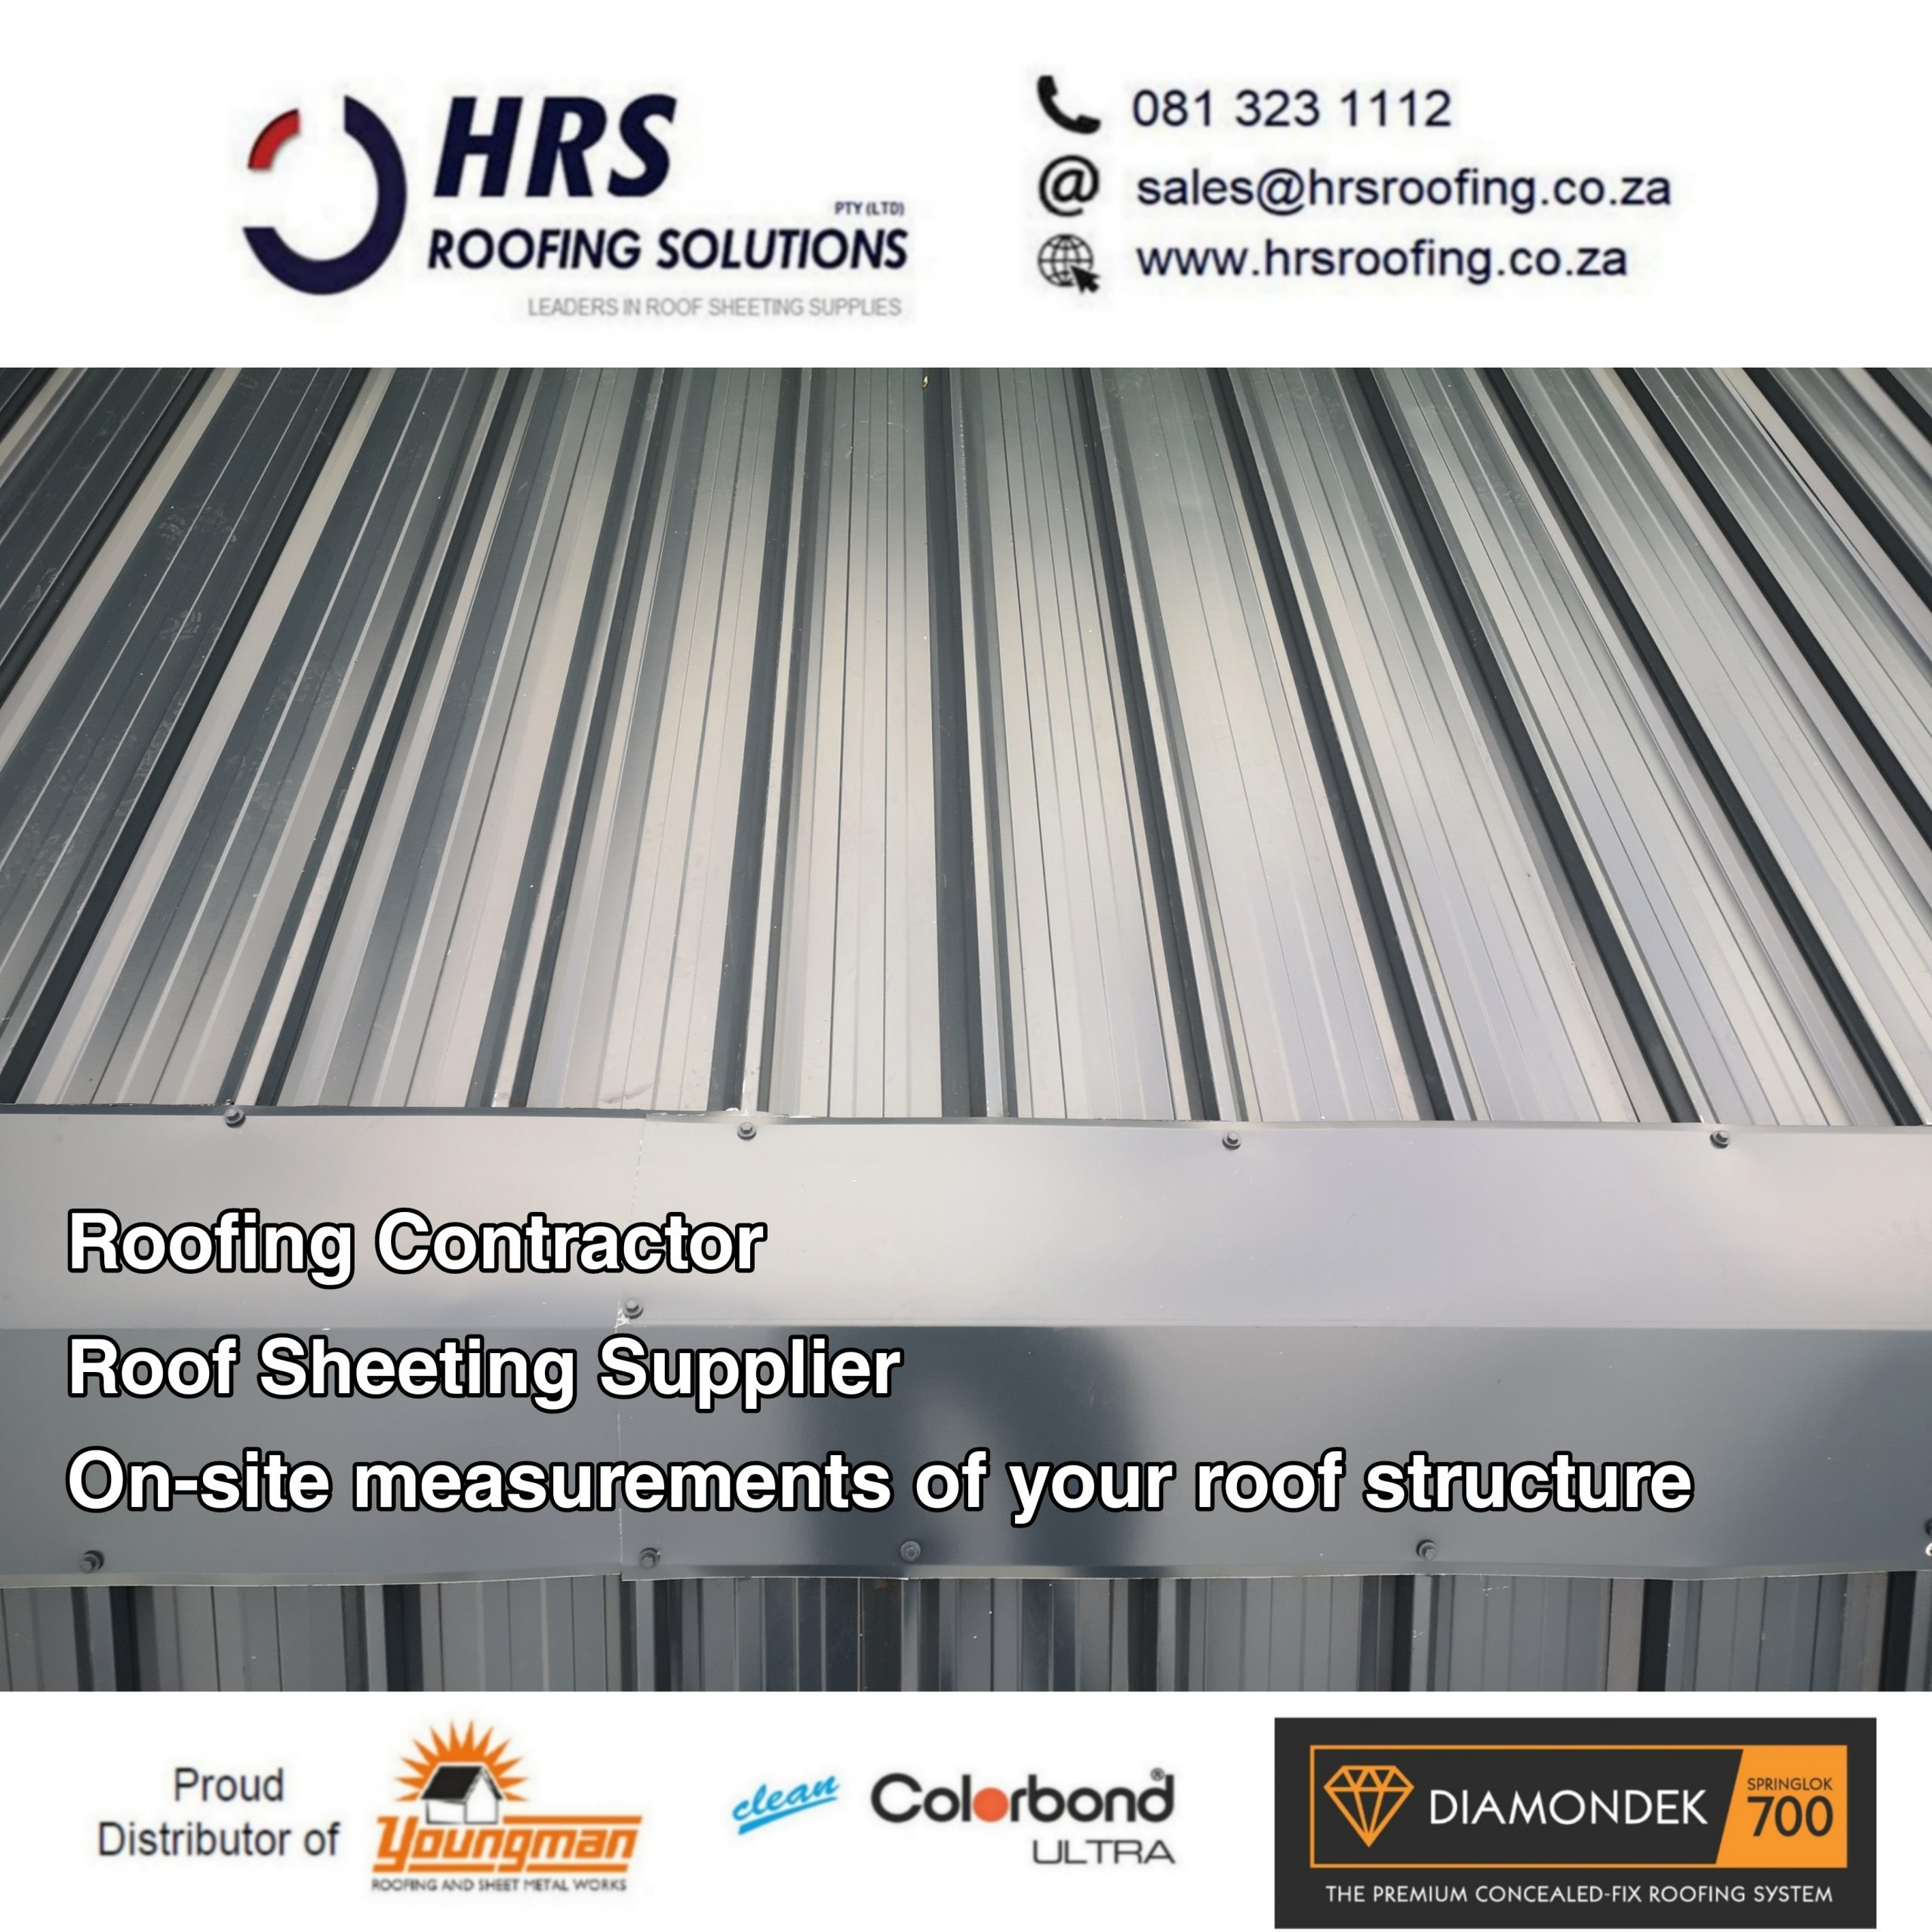 hrs roofing solutions roof sheeting supplier and registered roofing contractor scaled - Roofing Gallery